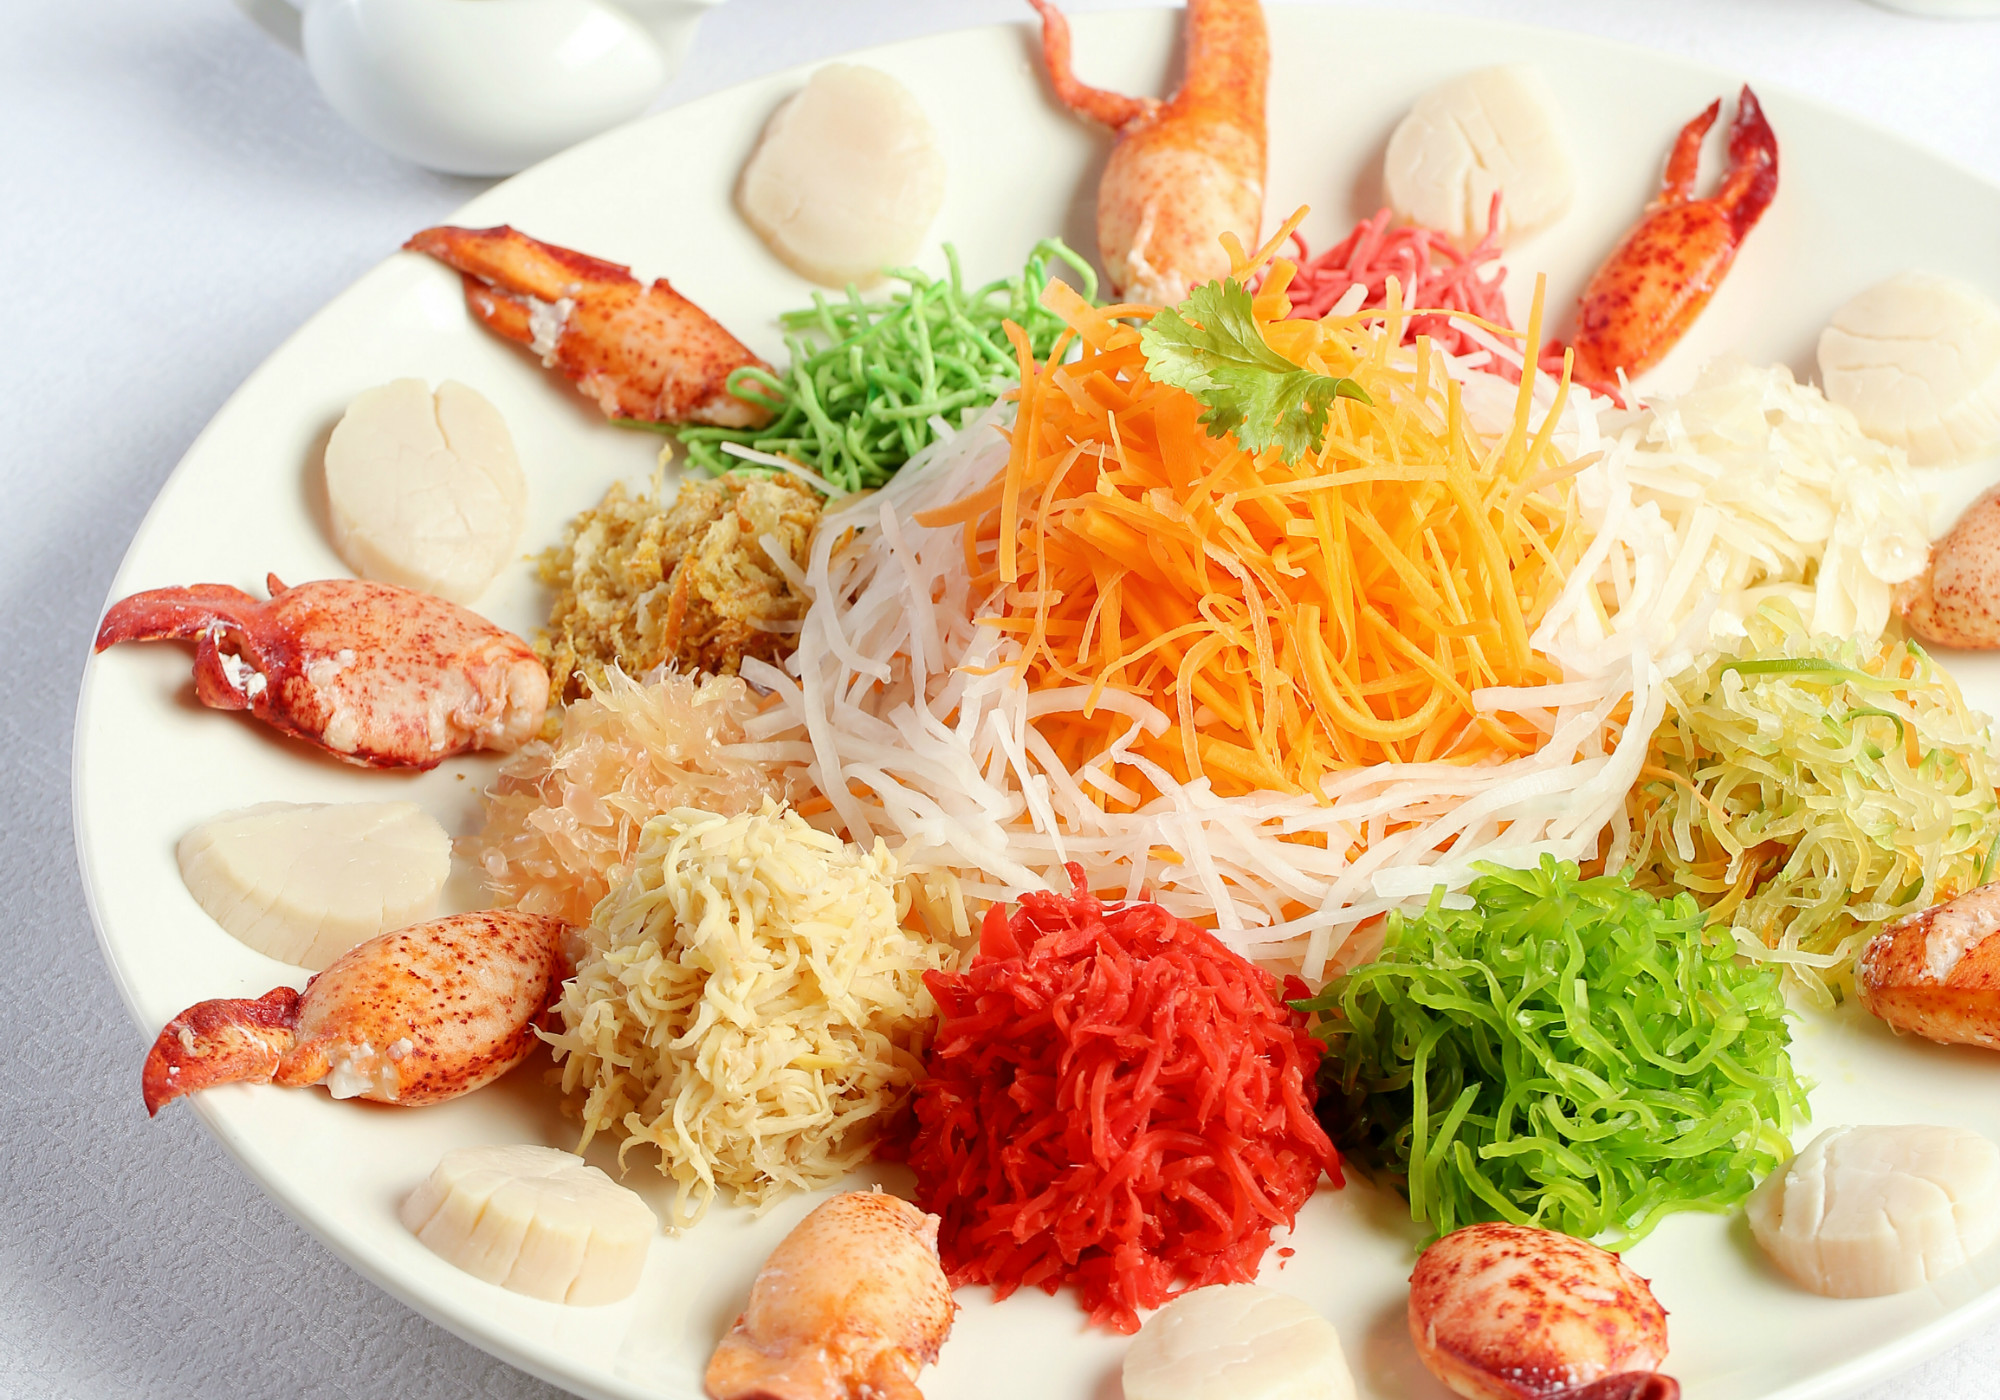 6 Yee Sangs to try in KL this Chinese New Year